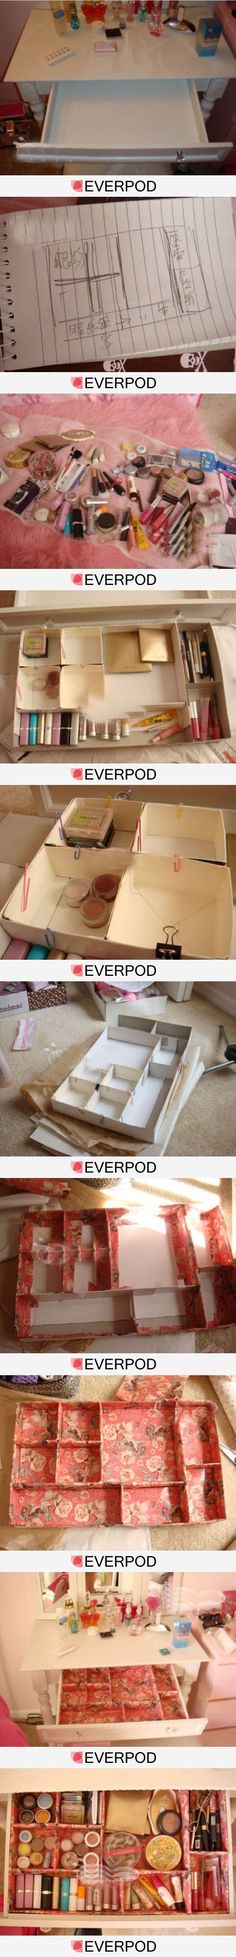 DIY Drawer organizer for make-up, jewelry, office and craft supplies.